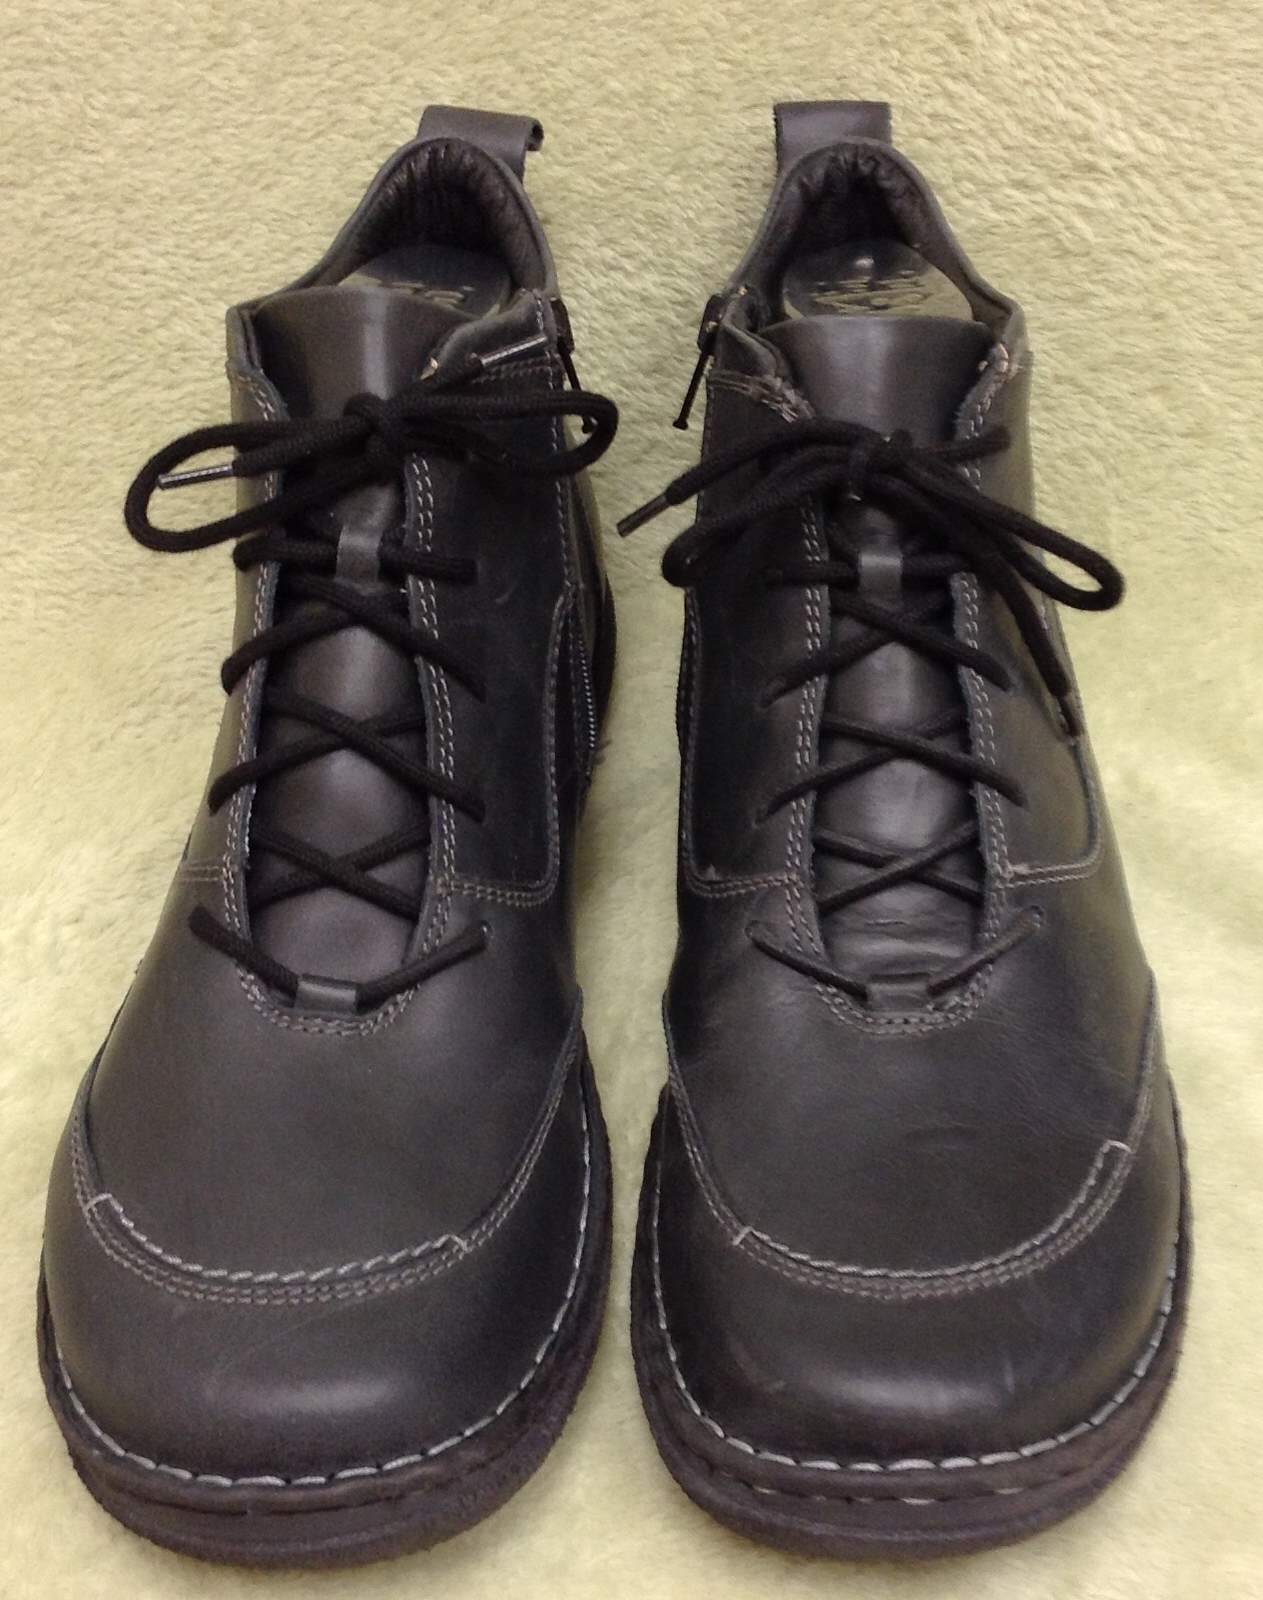 NWOT Josef Seibel Lace Up Side Zip Leather Men's Ankle Ankle Ankle avvio Navy blu Dimensione 12 1984db